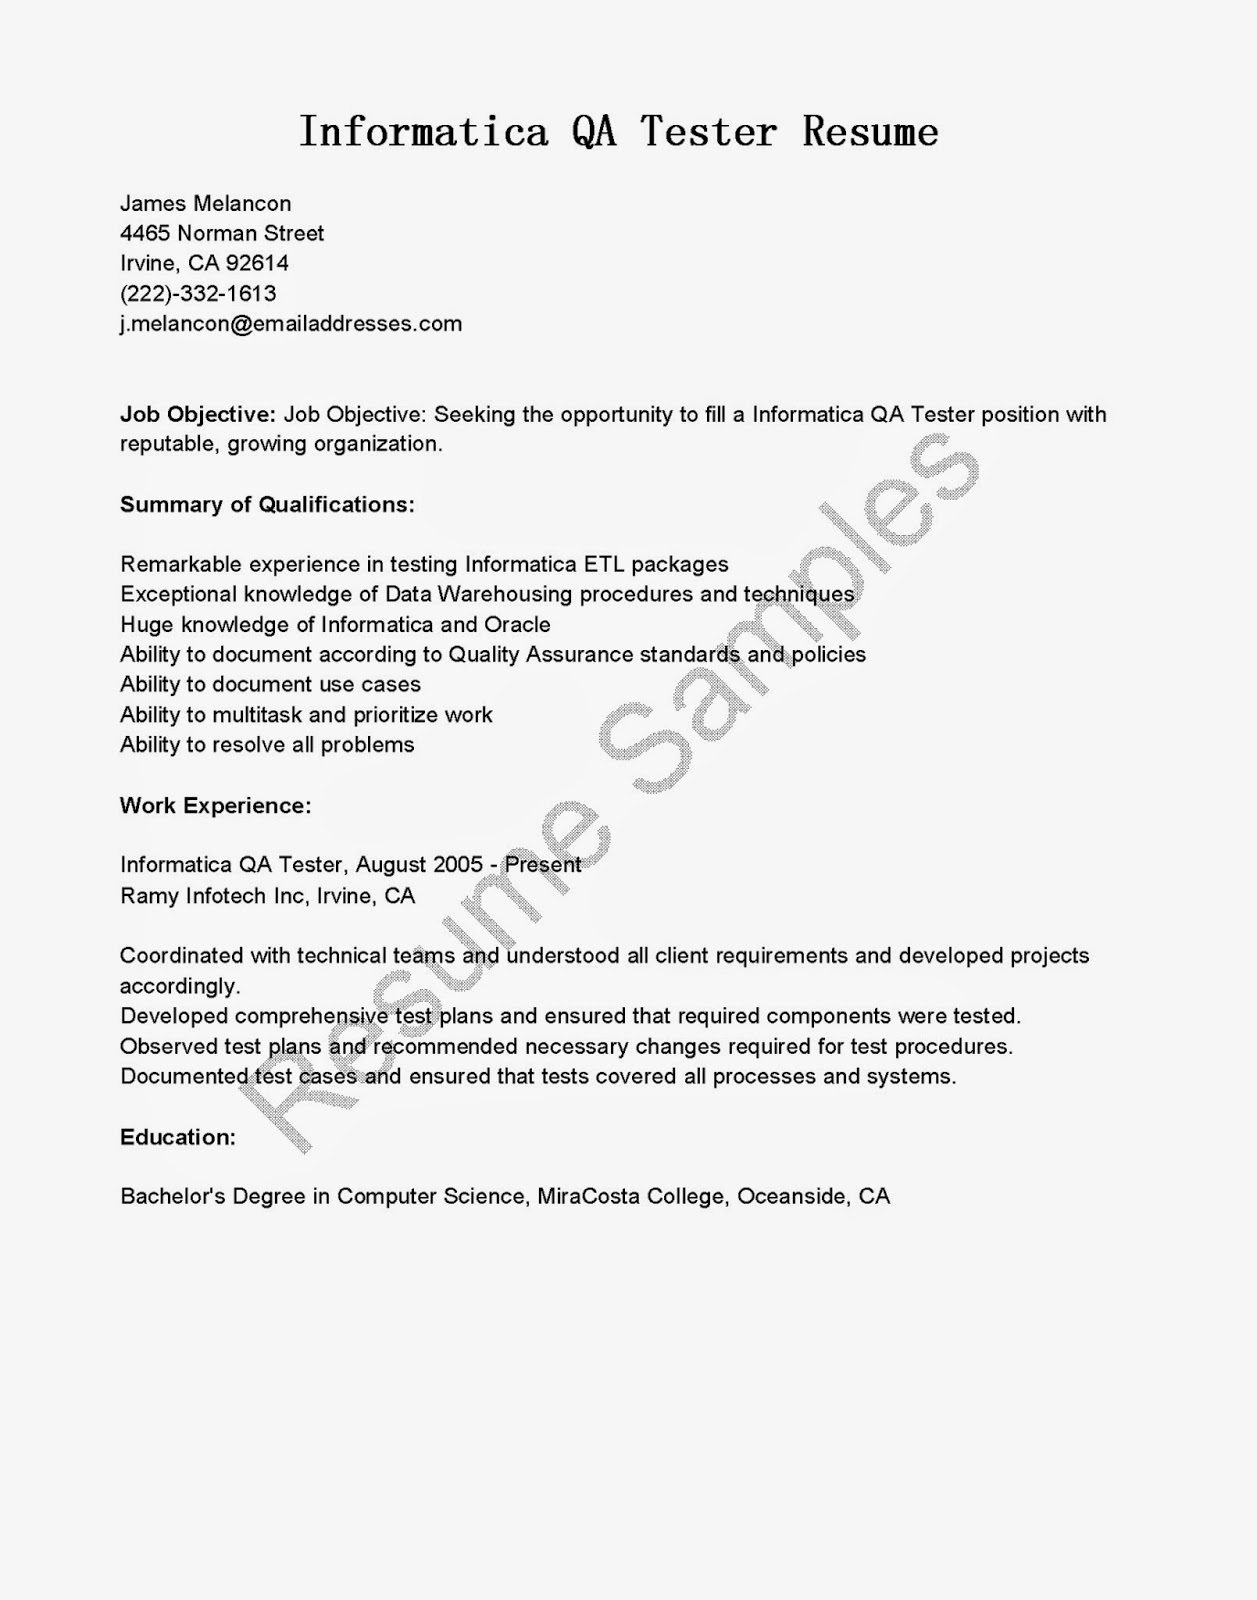 resume sample for qa tester cv layout and information